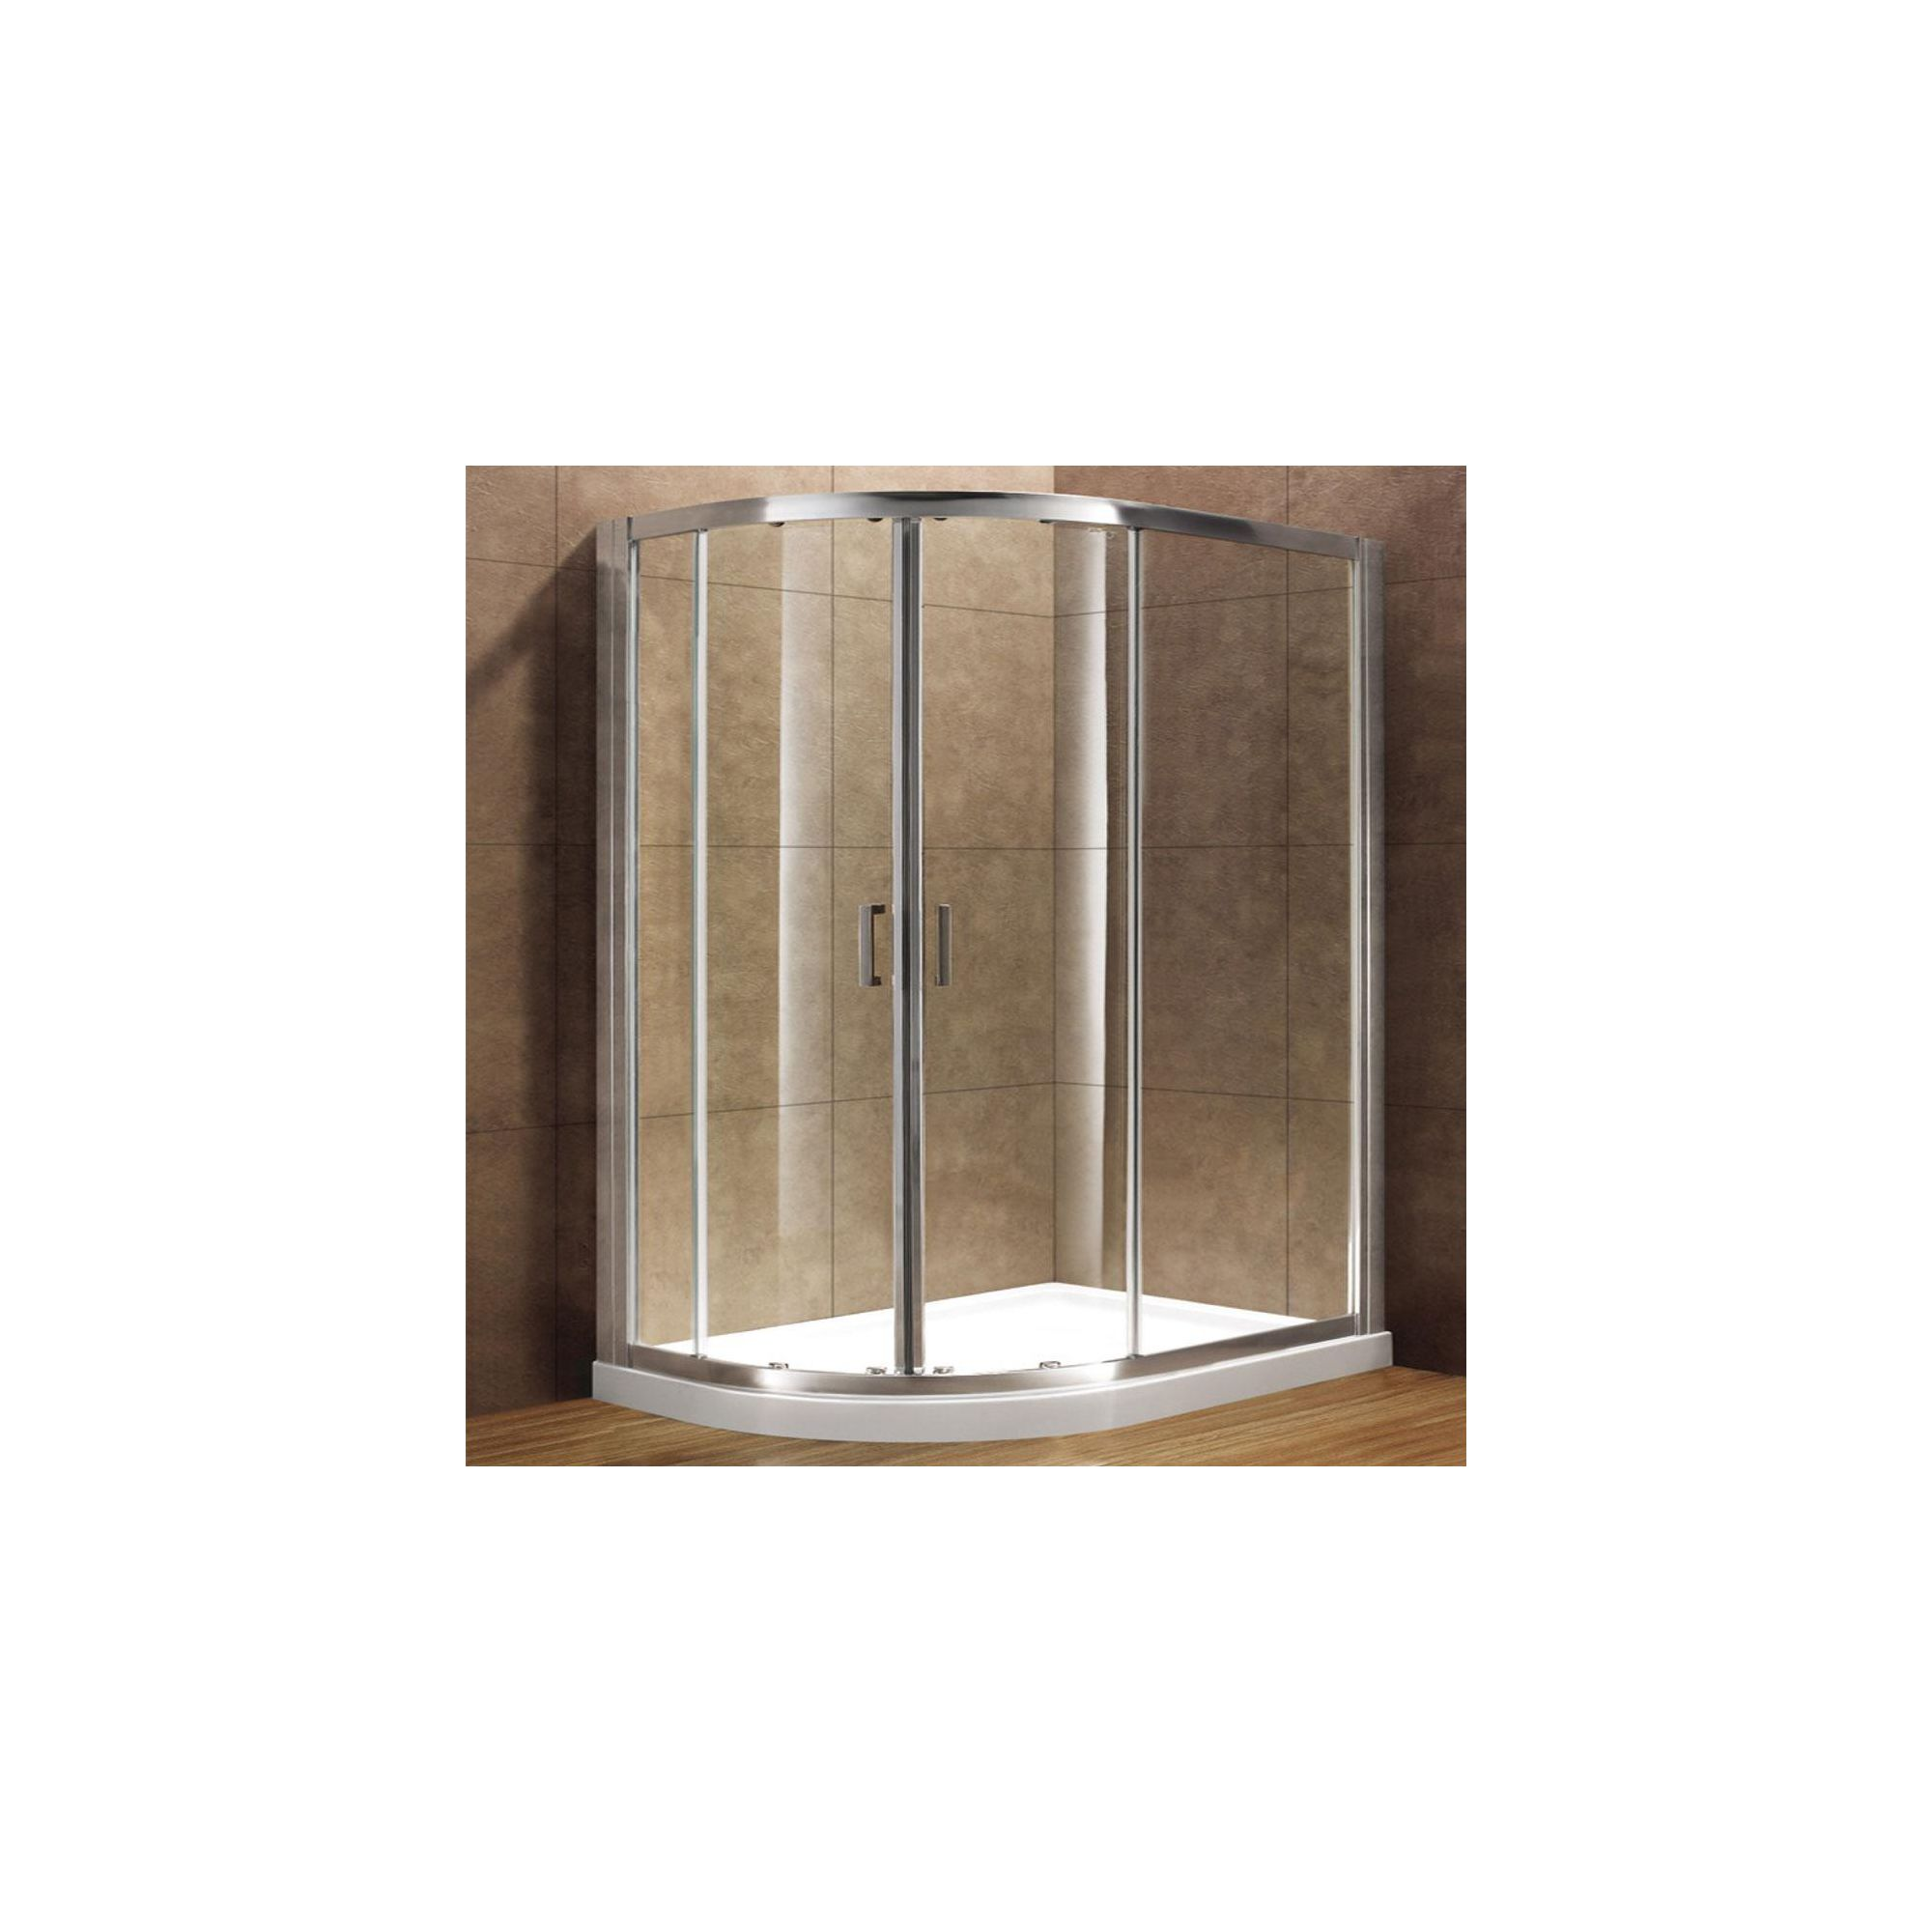 Duchy Premium Double Offset Quadrant Shower Door, 1000mm x 800mm, 8mm Glass at Tesco Direct